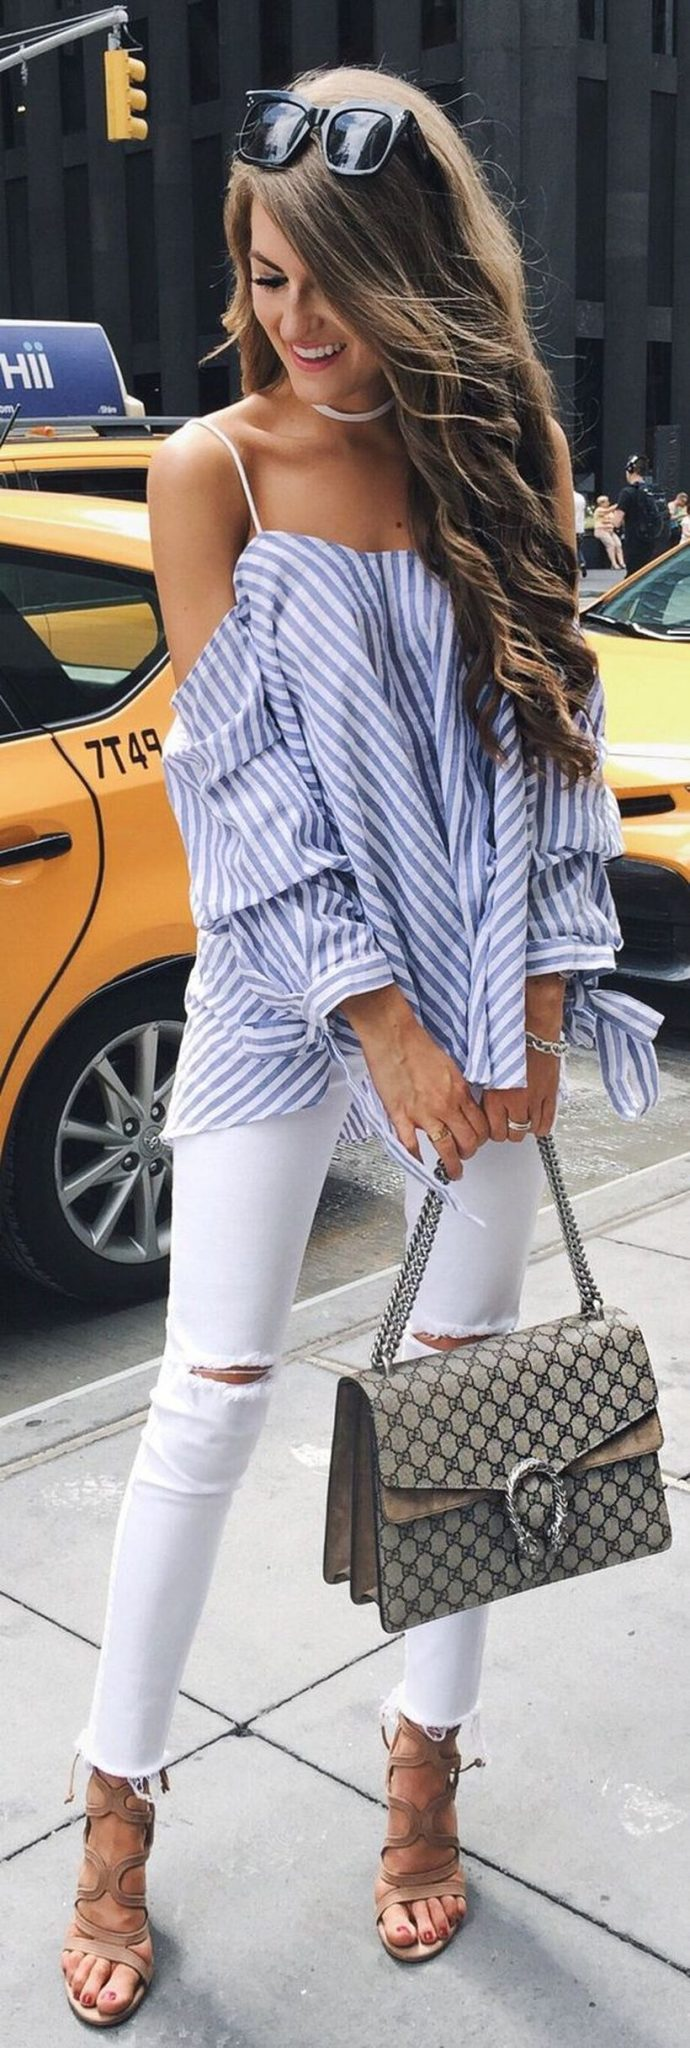 Perfect ways to wear white denim jeans outfits 22